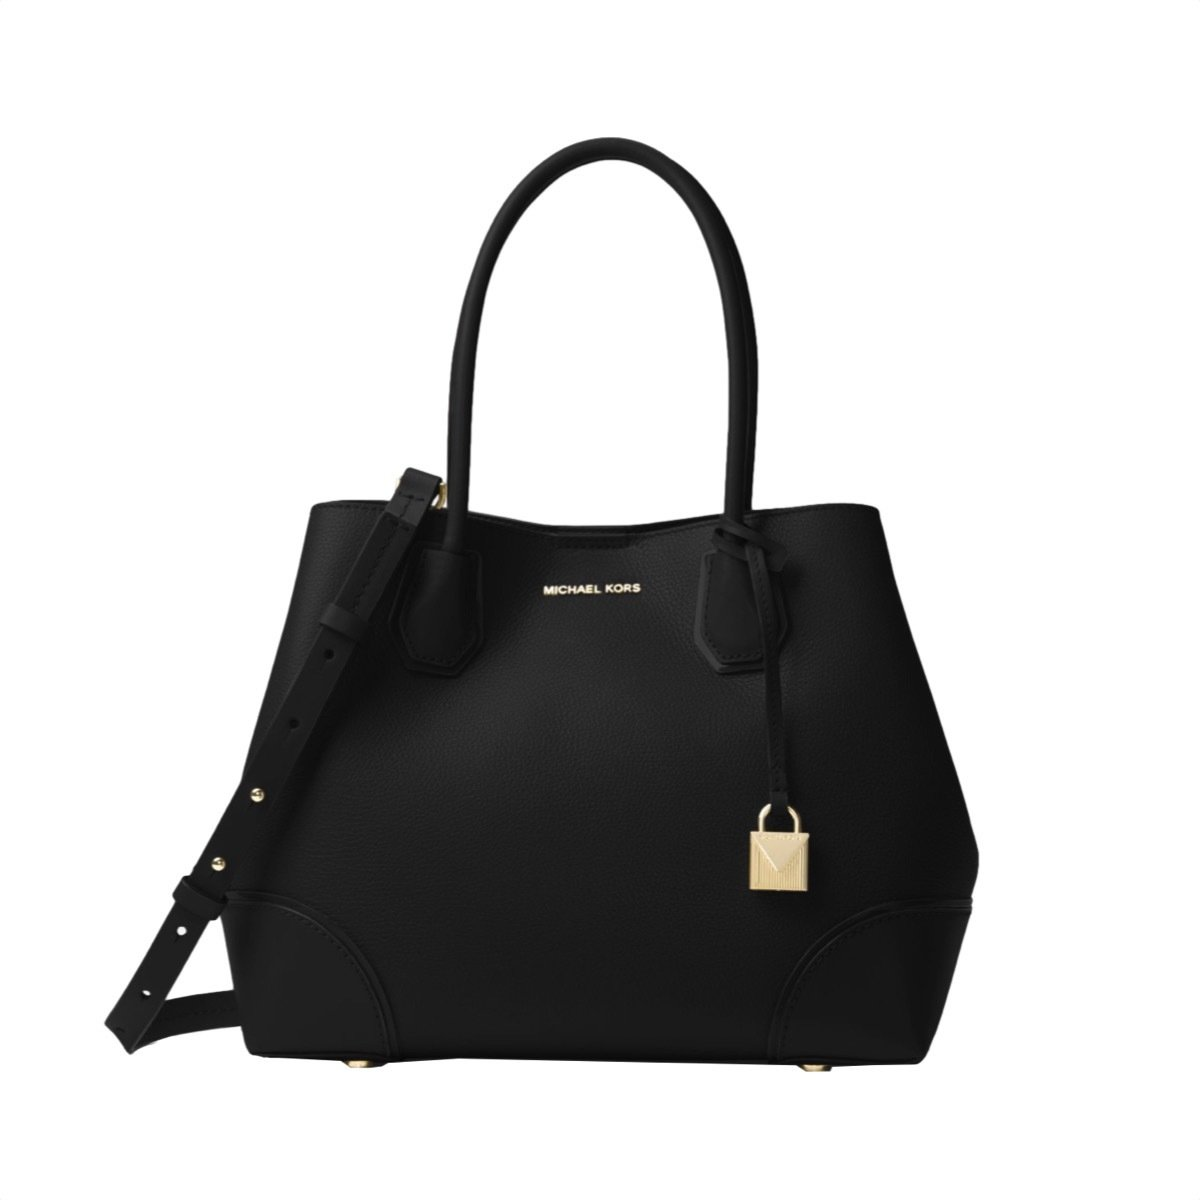 MICHAEL KORS - Mercer Gallery MD Zip Tote - Black